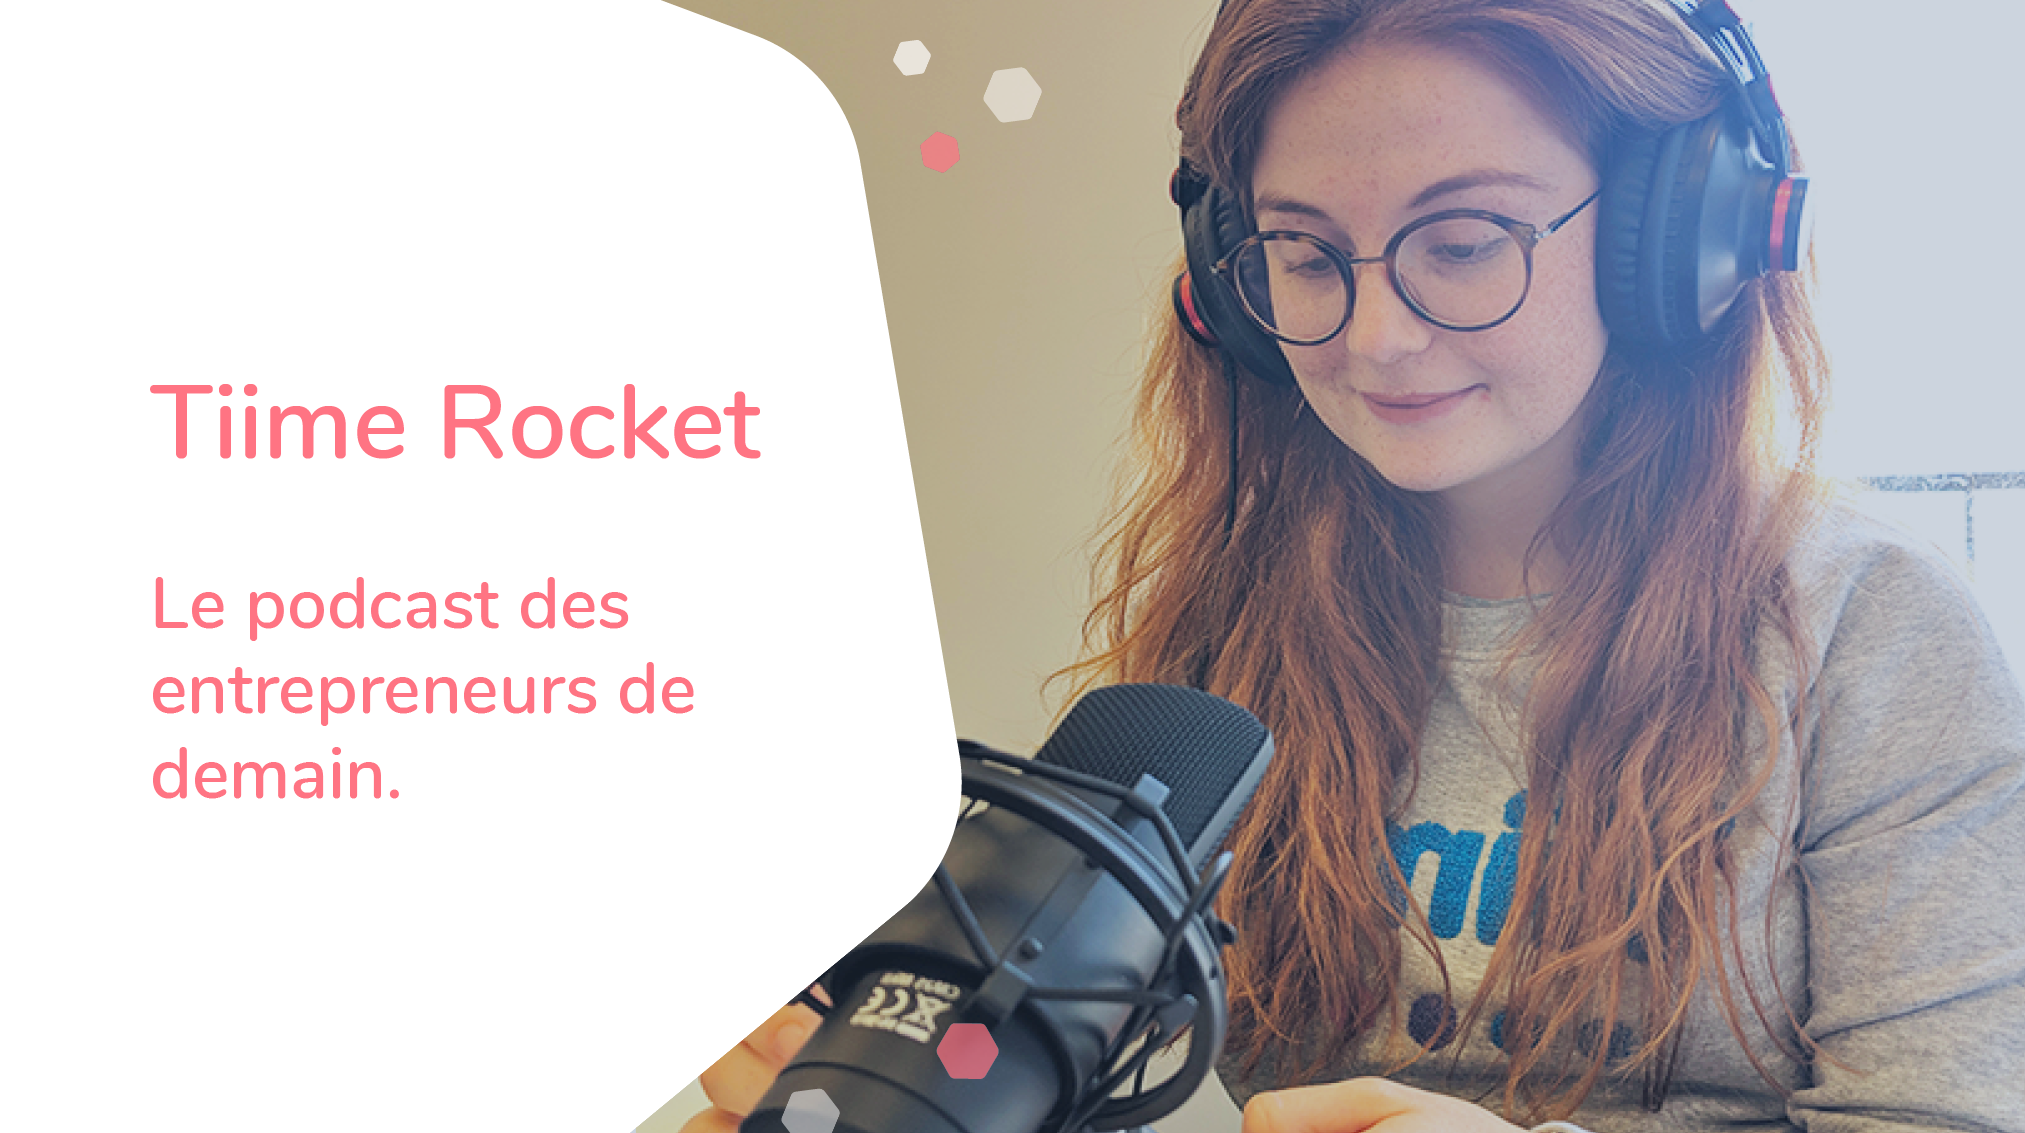 Tiime Rocket, le podcast des entrepreneurs de demain